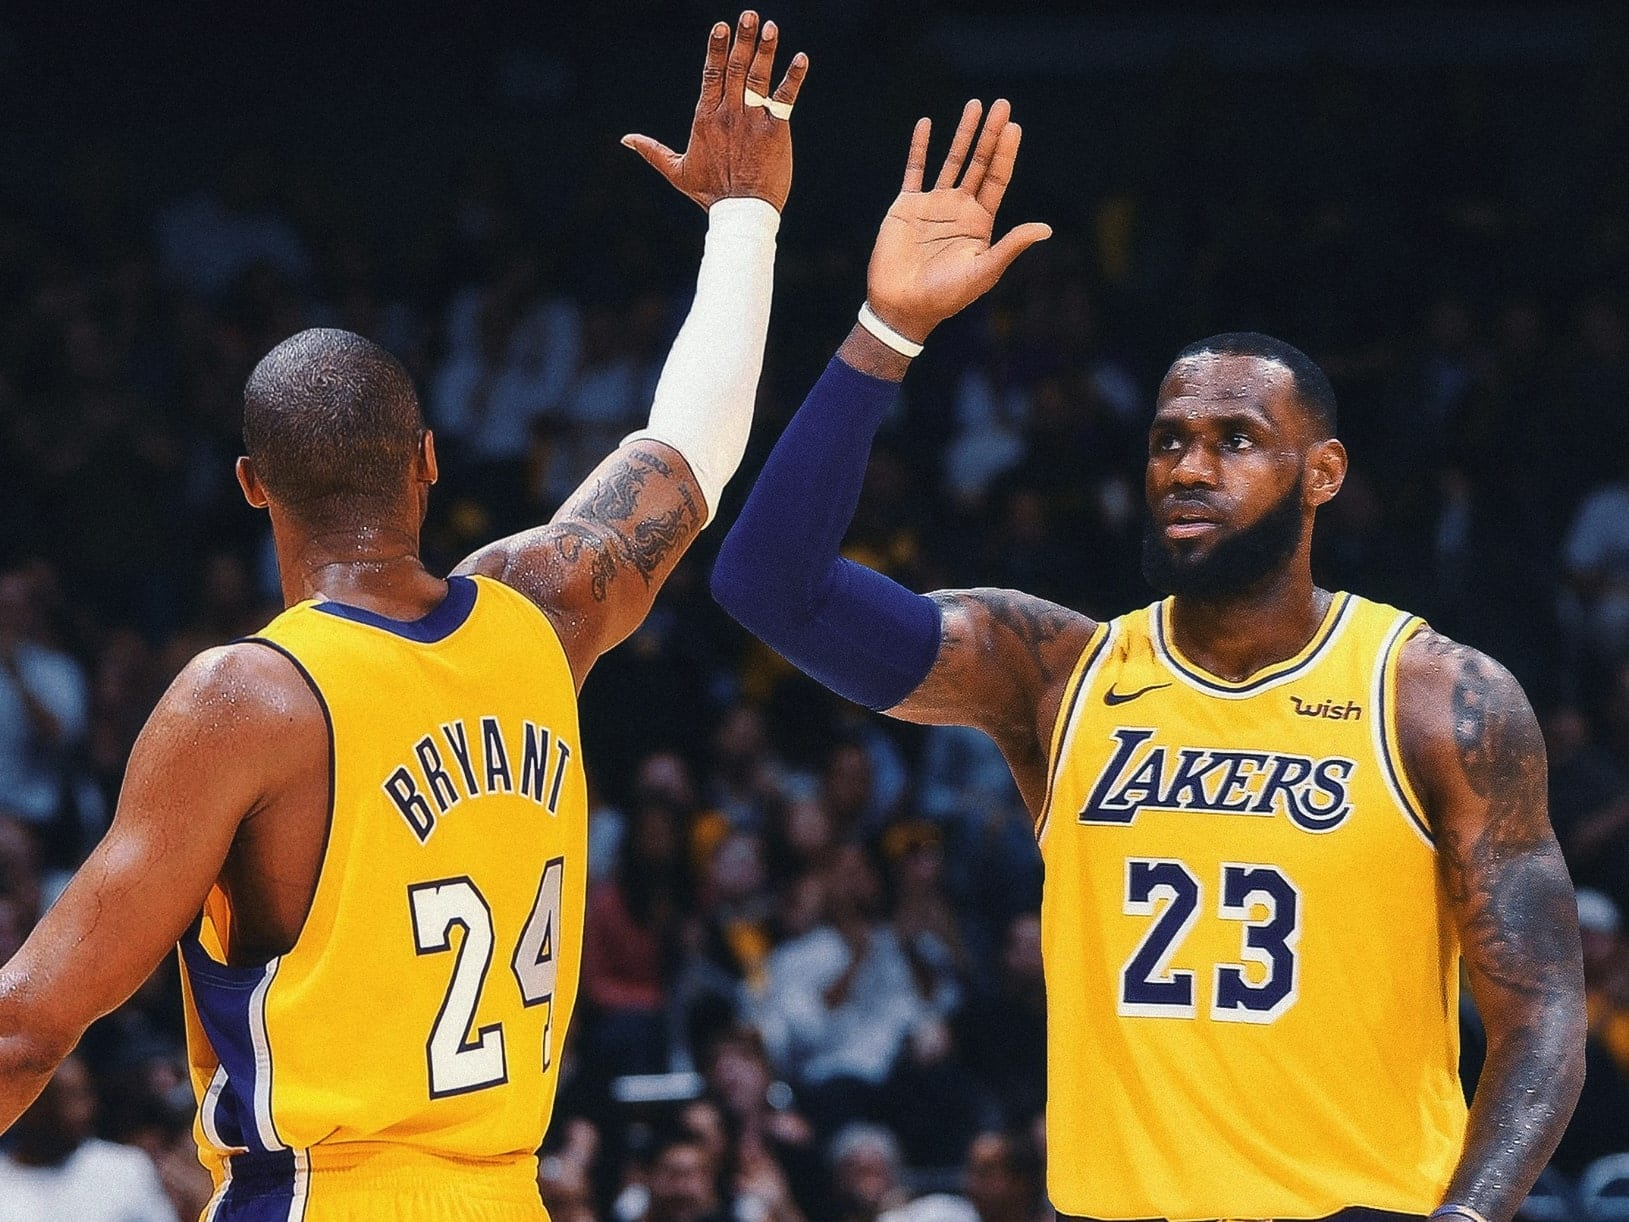 LeBron James Reacts to Passing Kobe Bryant, Tim Duncan and Kareem Abdul-Jabbar